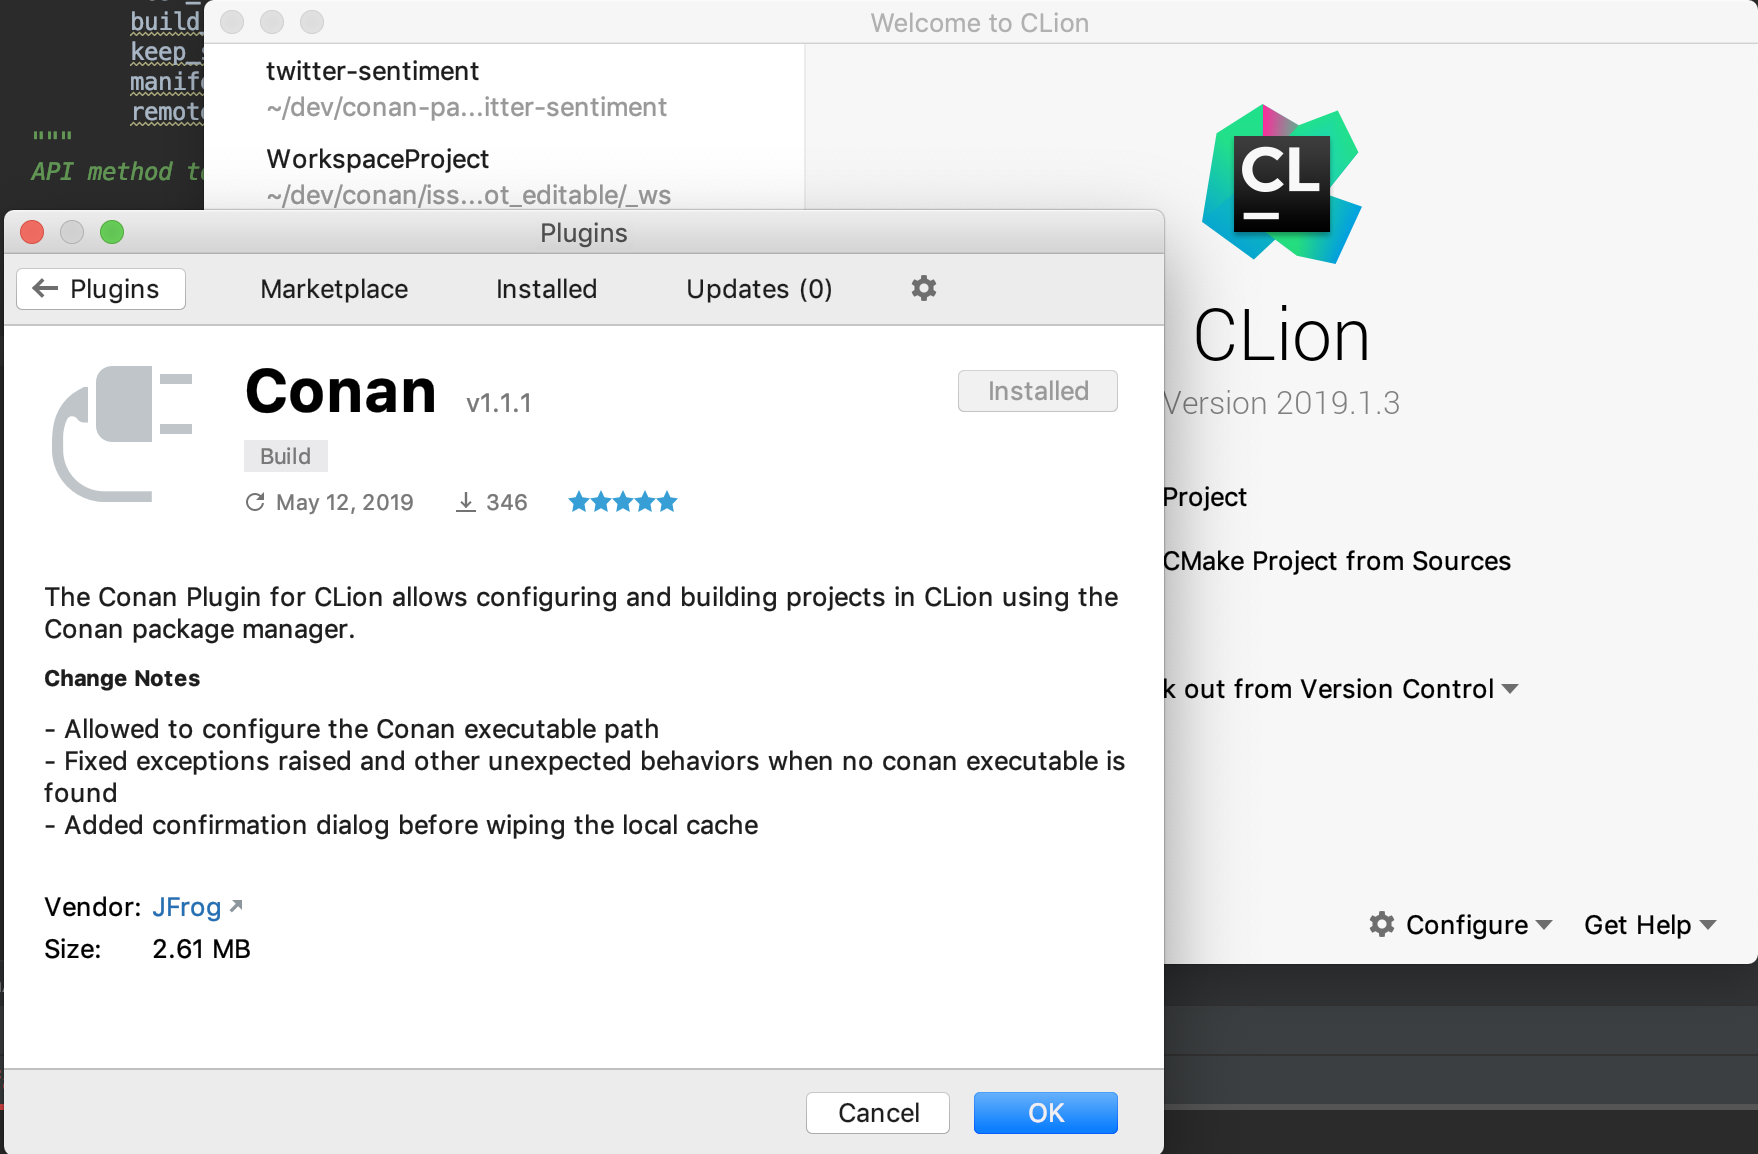 Install Conan plugin for CLion from the Welcome screen